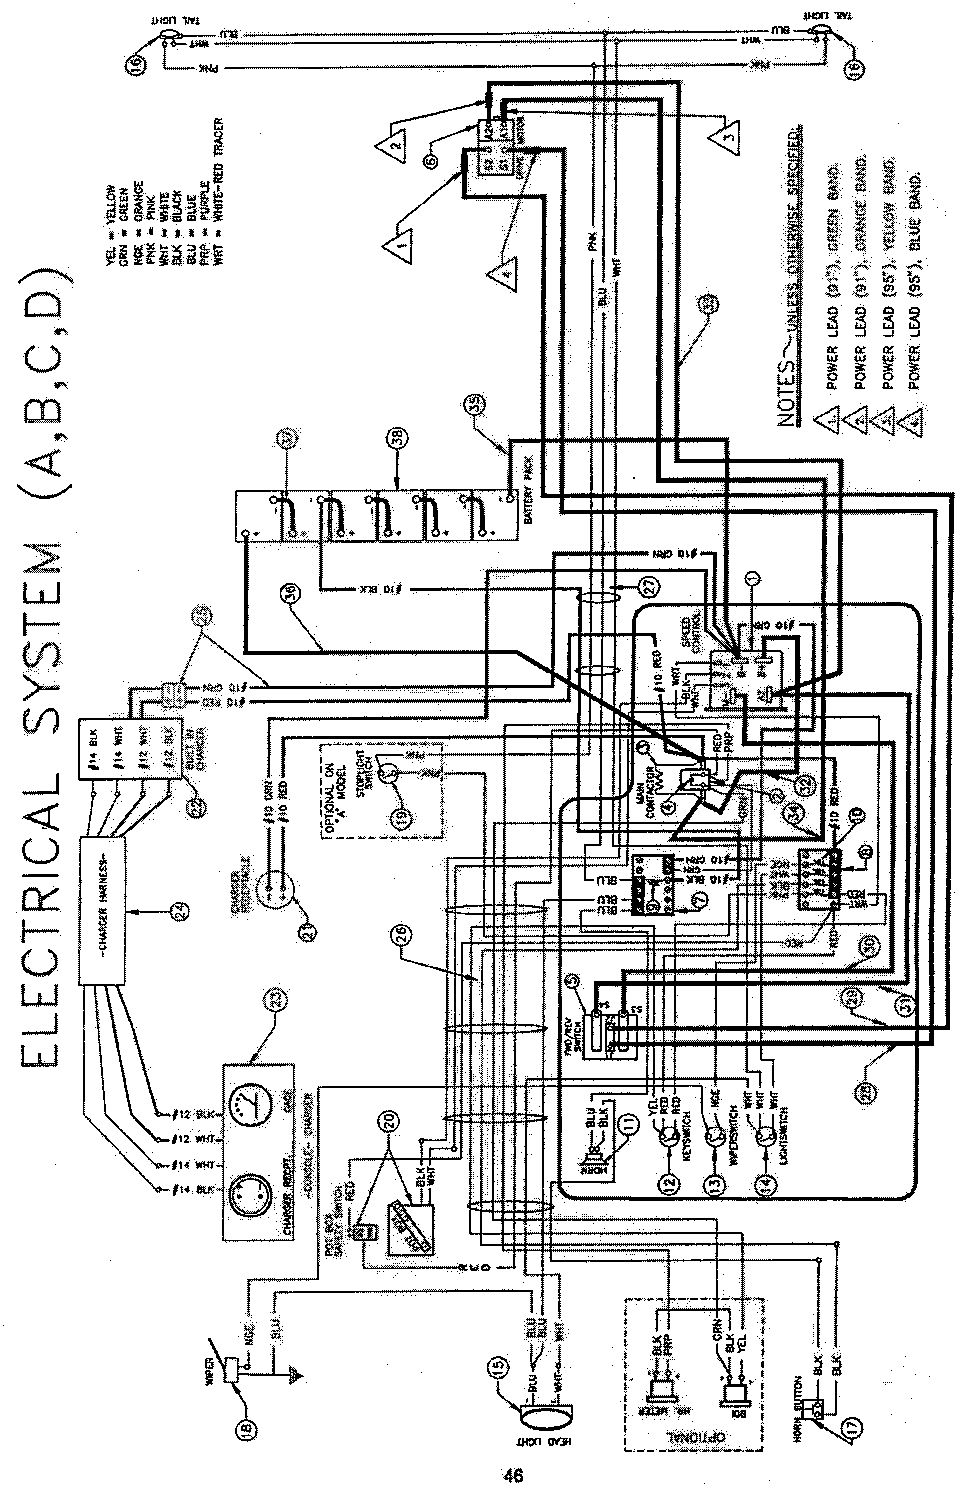 48 Volt Ez Go Rxv Golf Cart Wiring Diagram further 563583340840709492 also 2004 Mercedes Ml350 Fuse Box Chart Wiring Diagrams likewise Watch also Gallery. on e z go golf cart wiring diagrams